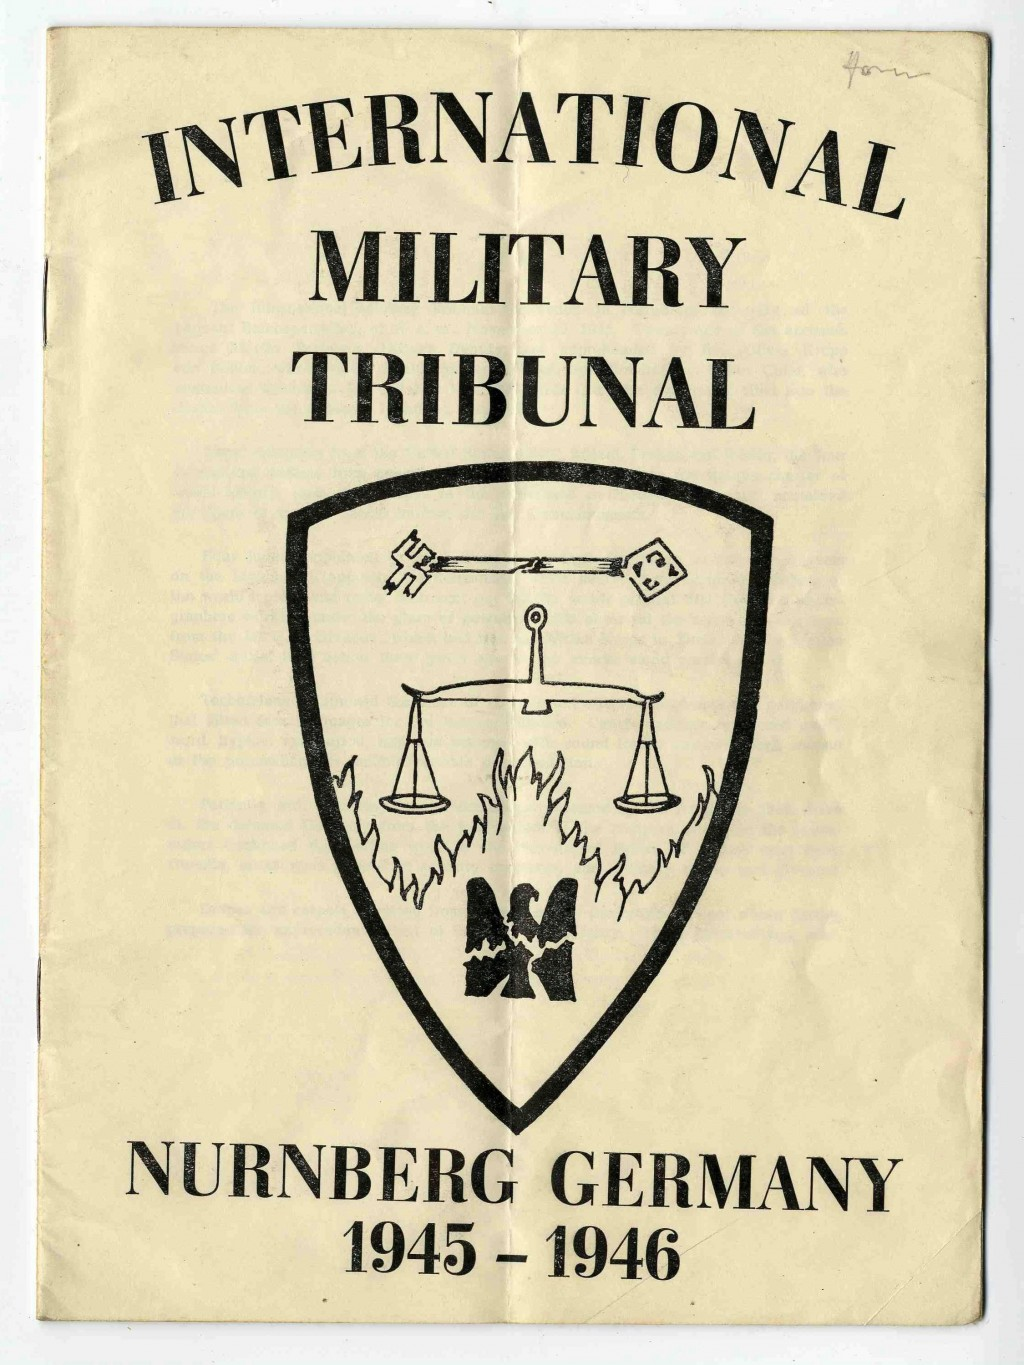 International Military Tribunal booklet cover [LCID: 20056pam]